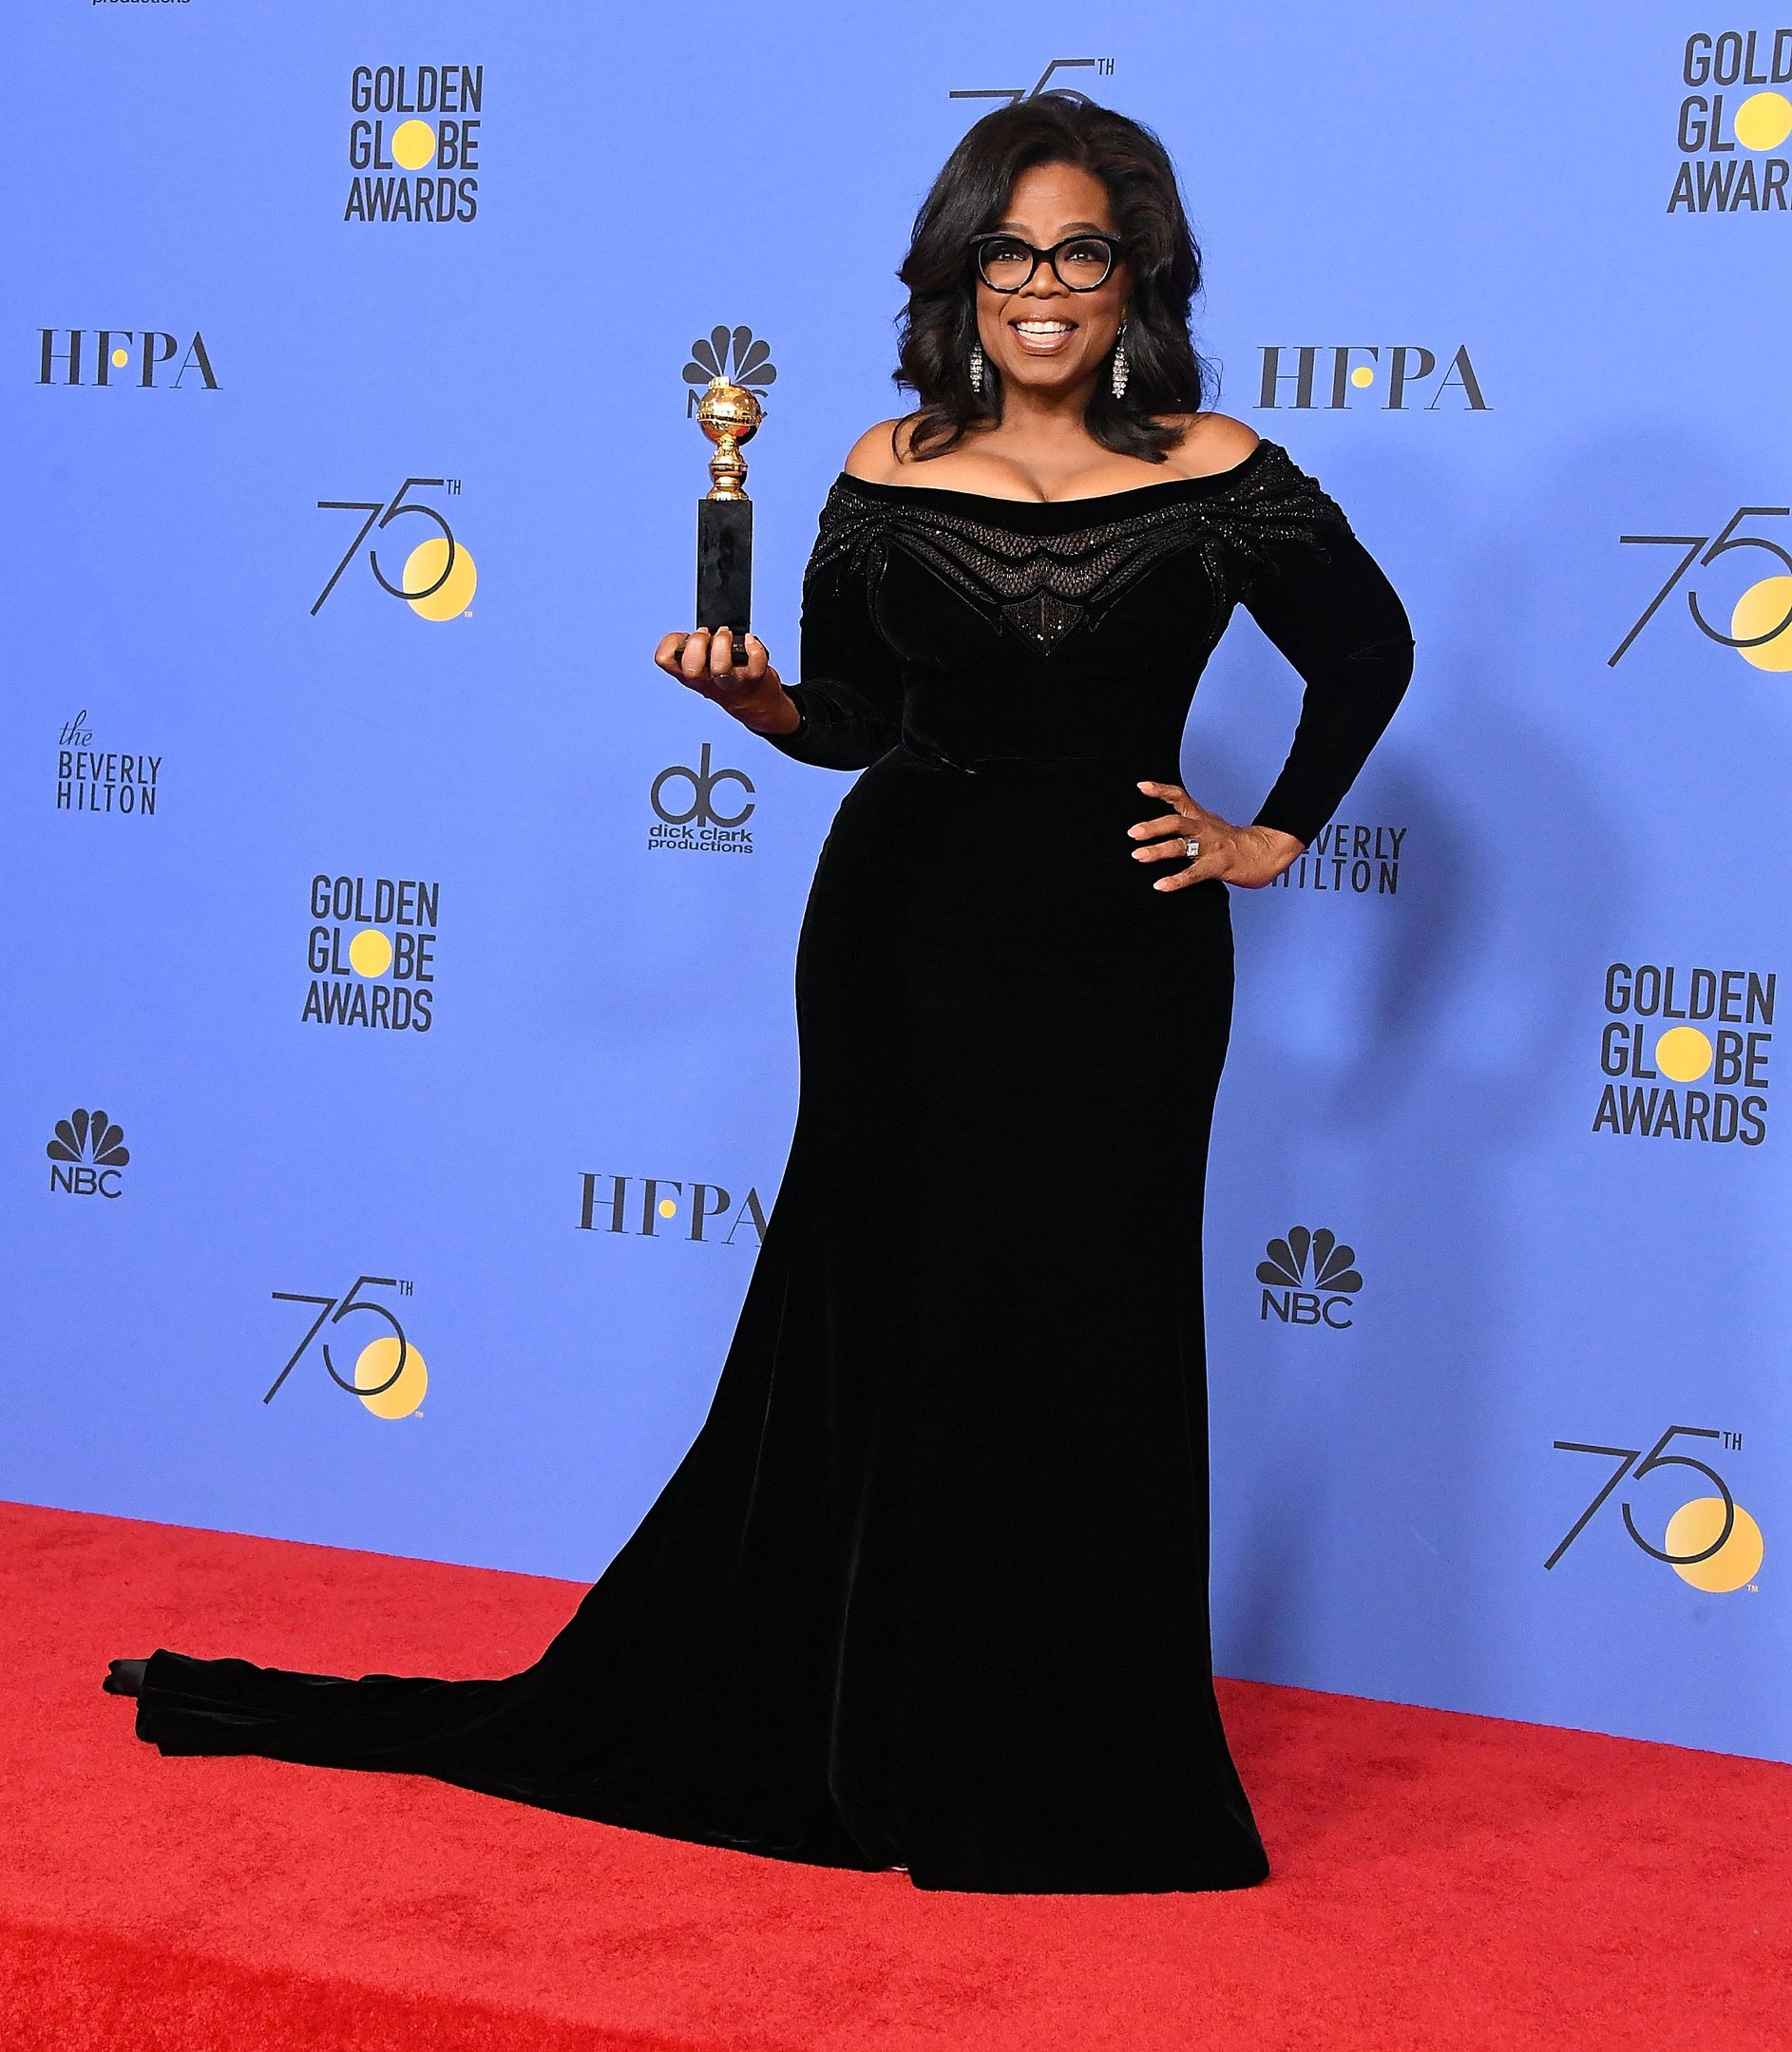 Oprah Winfrey reiterates she will not run for president